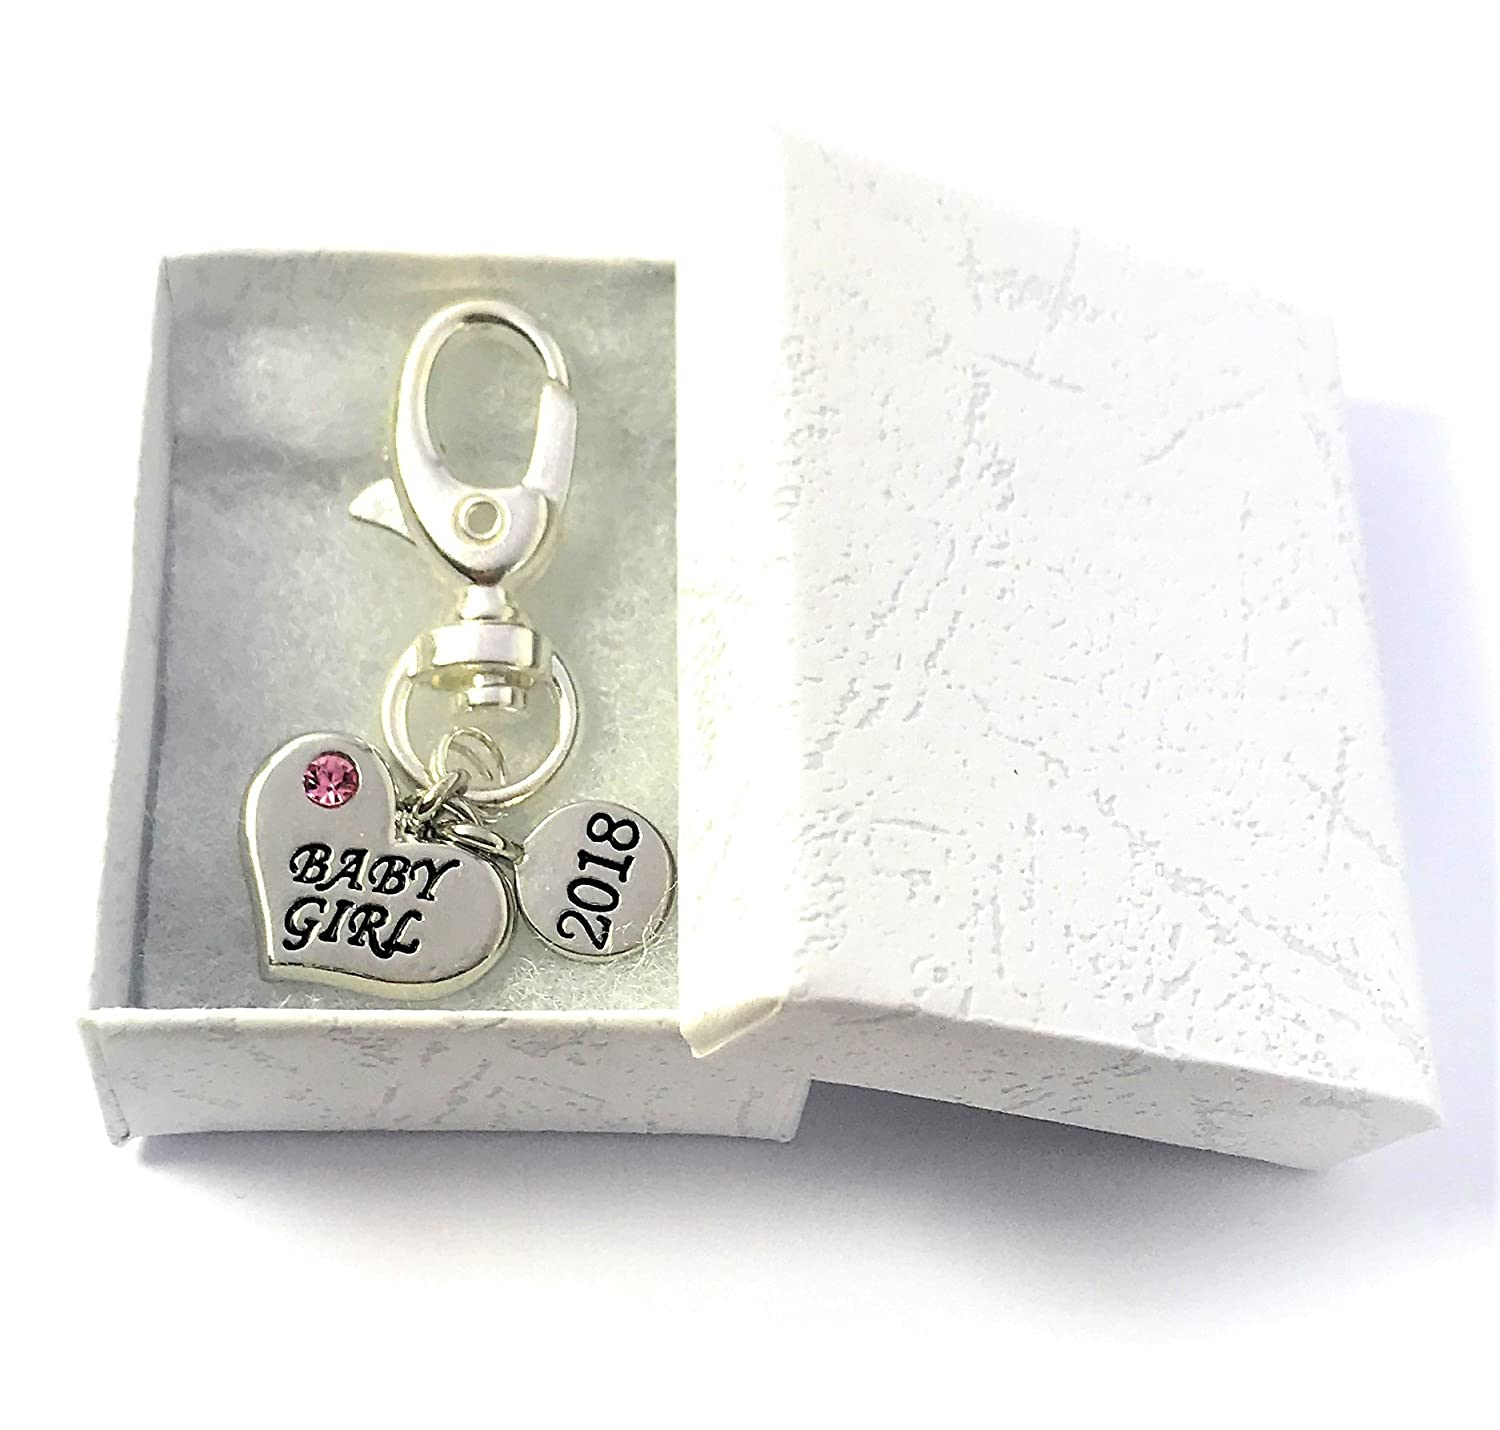 Heart Shape Baby Girl 2018 Keyring with Gift Box Handmade by Libby's Market Place Libby' s Market Place